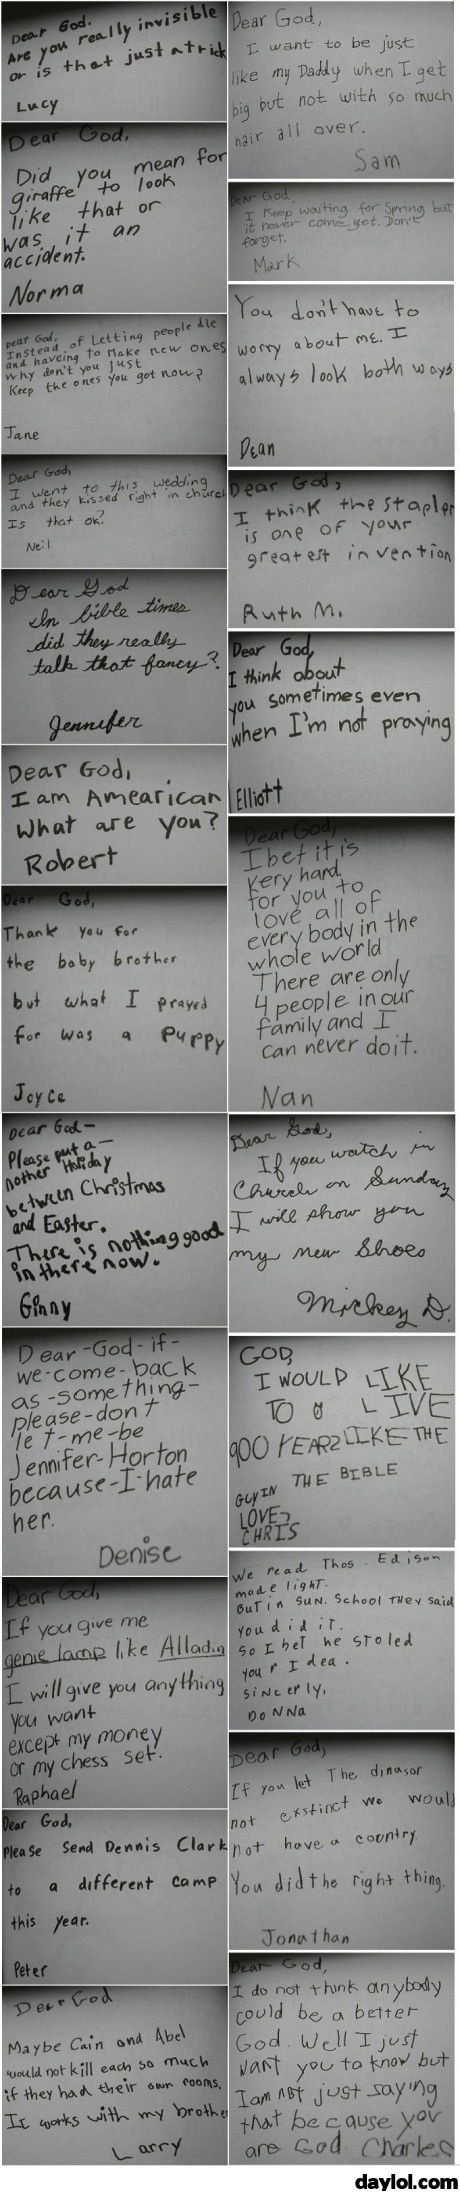 When kids write letters to god - DayLoL.com - Your Daily LoL!